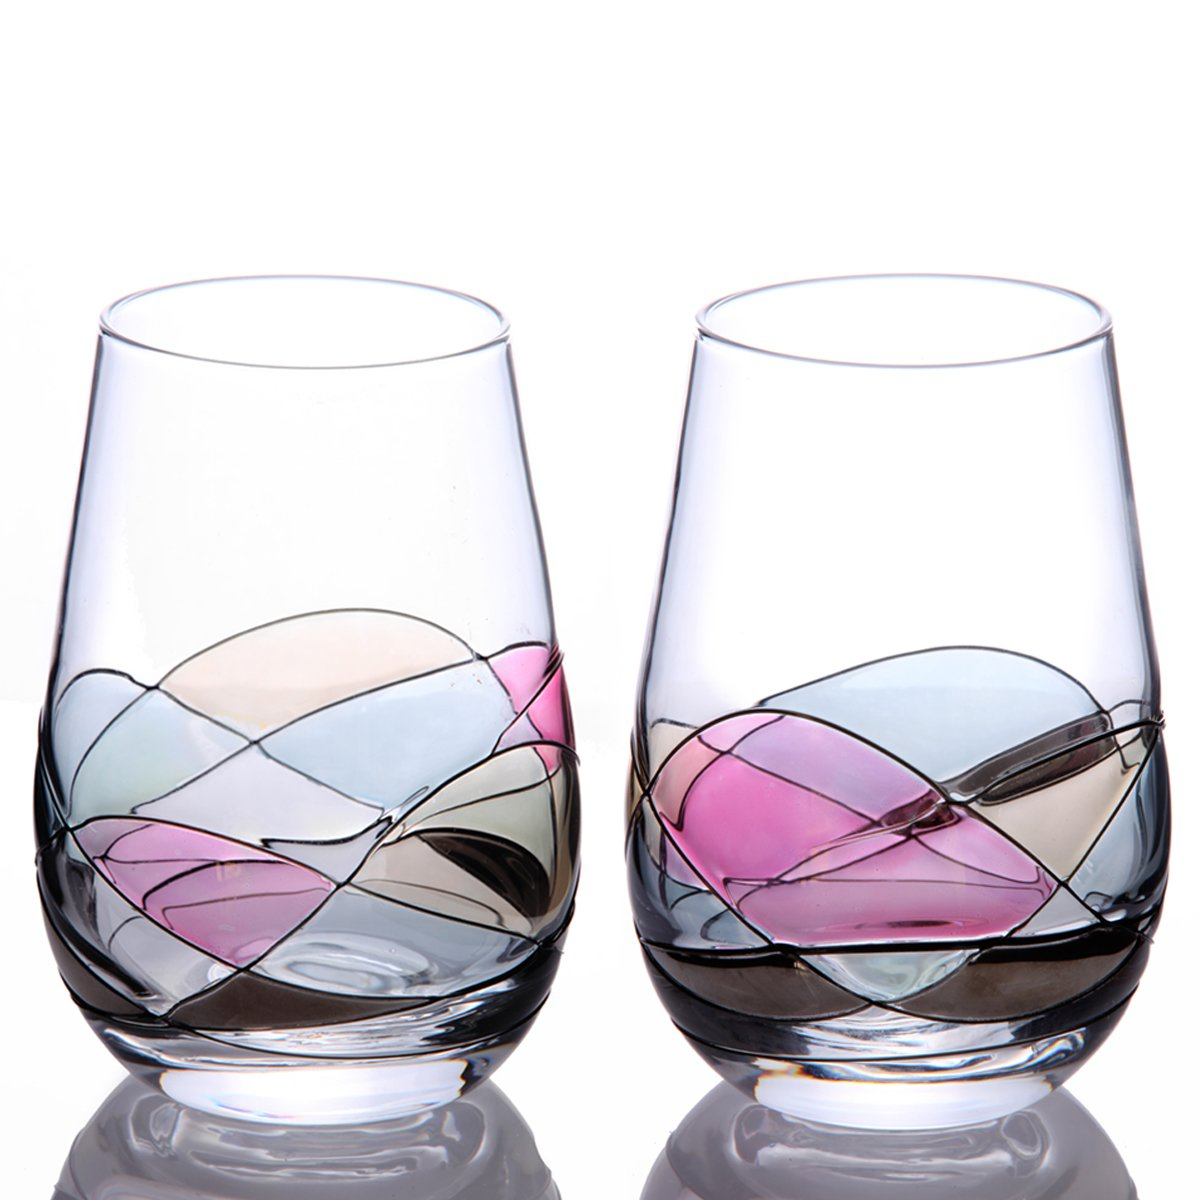 Handcrafted and Painted Stemless Wine Glasses by Sonoma Artisan, Set of 2. Ideal for Casual Entertaining, Unique Gift Idea, Romantic Night in, or Just Elevating Your Wine Enjoyment